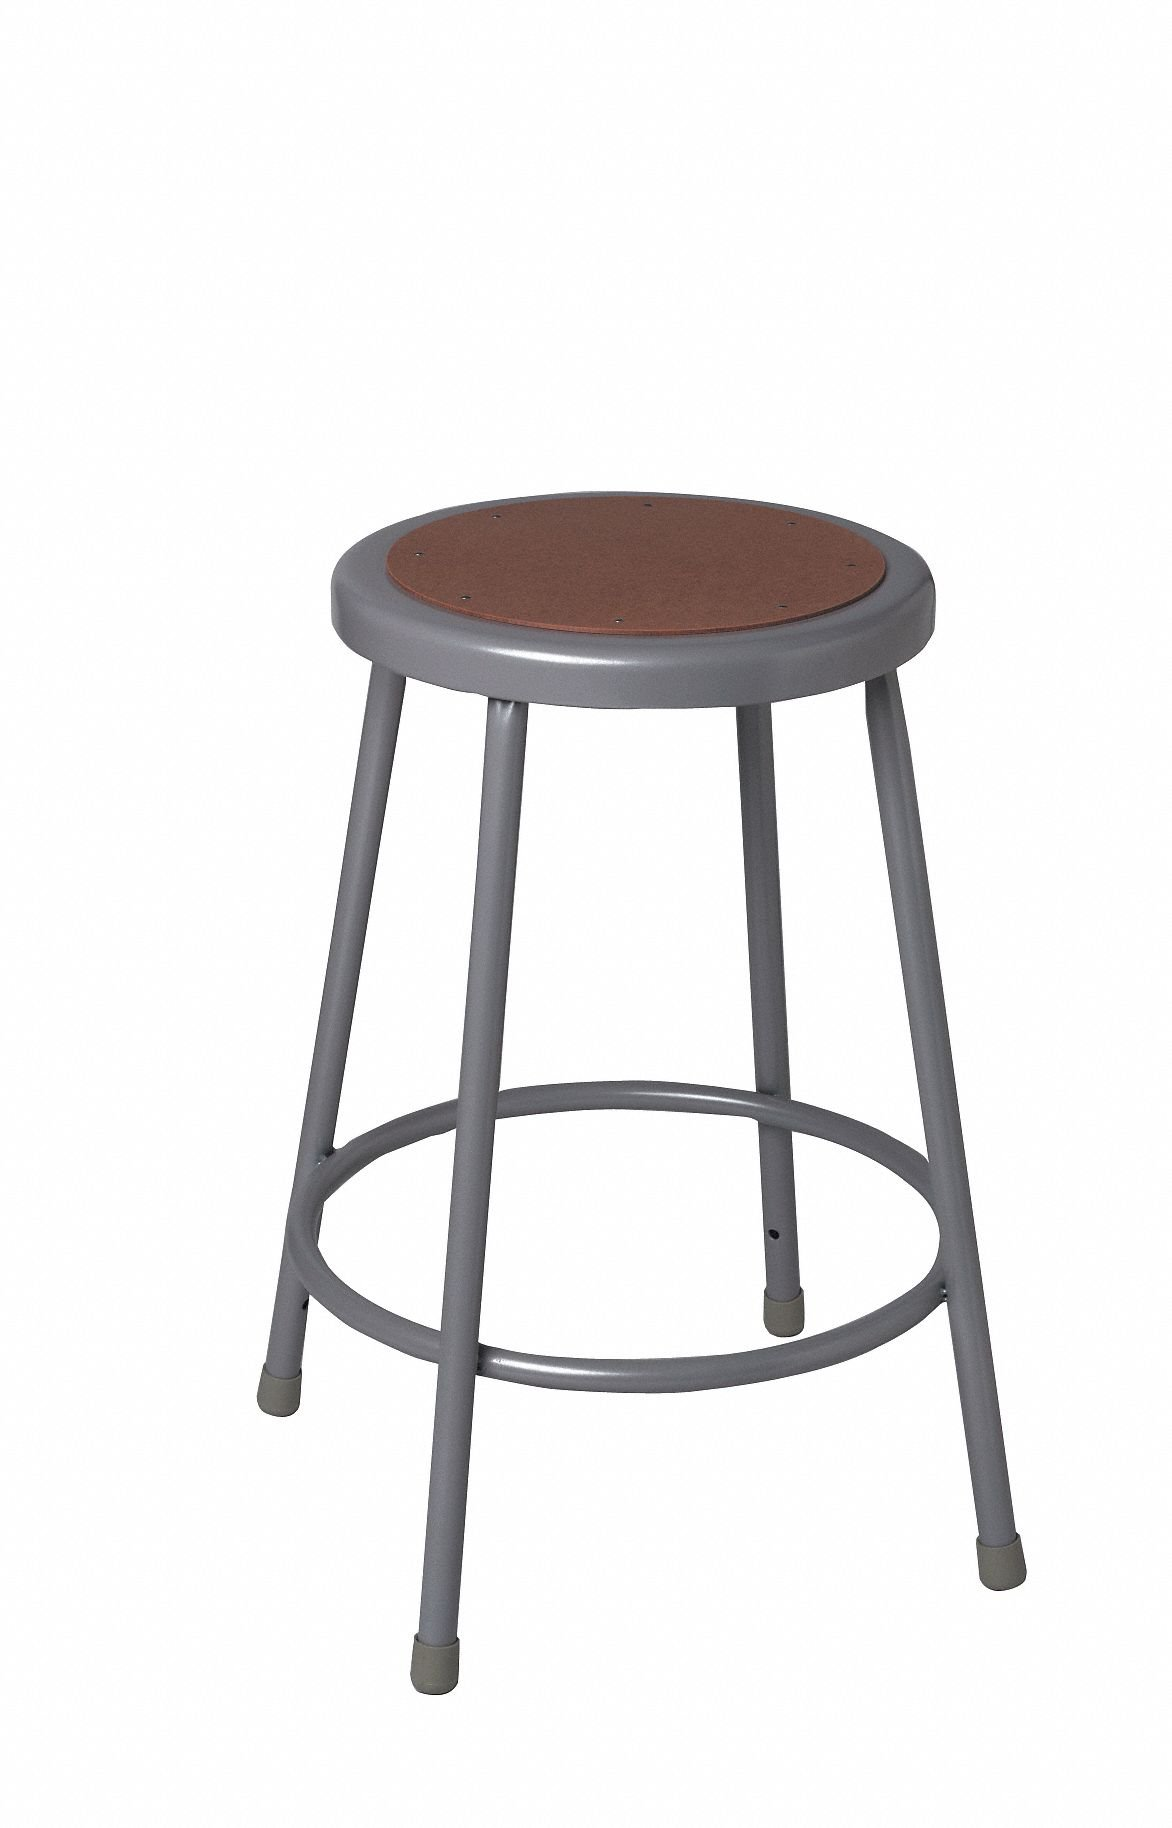 Round Stool with 24'' Seat Height Range and 300 lb. Weight Capacity, Gray